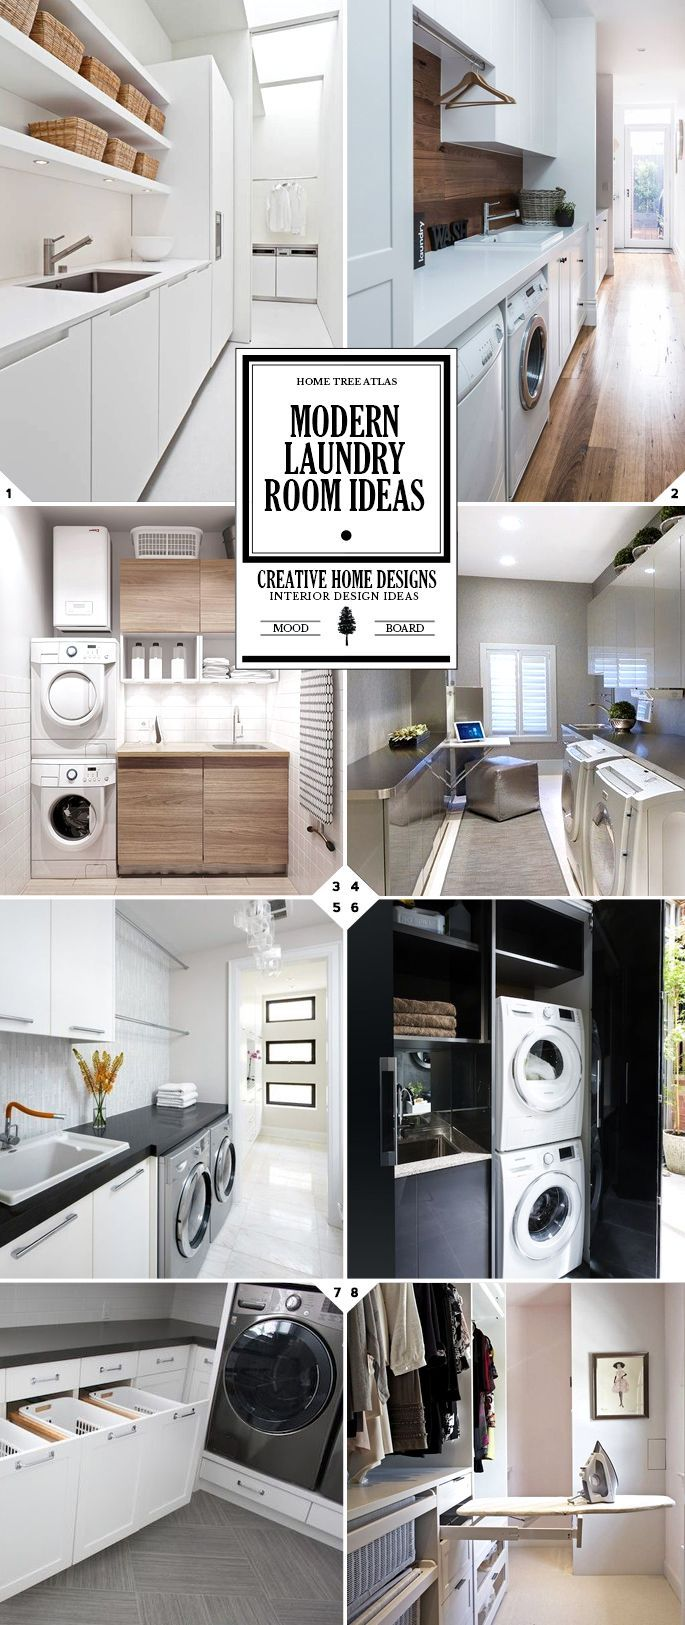 30 Best Small Laundry Room Ideas and Photos on A Budget Small